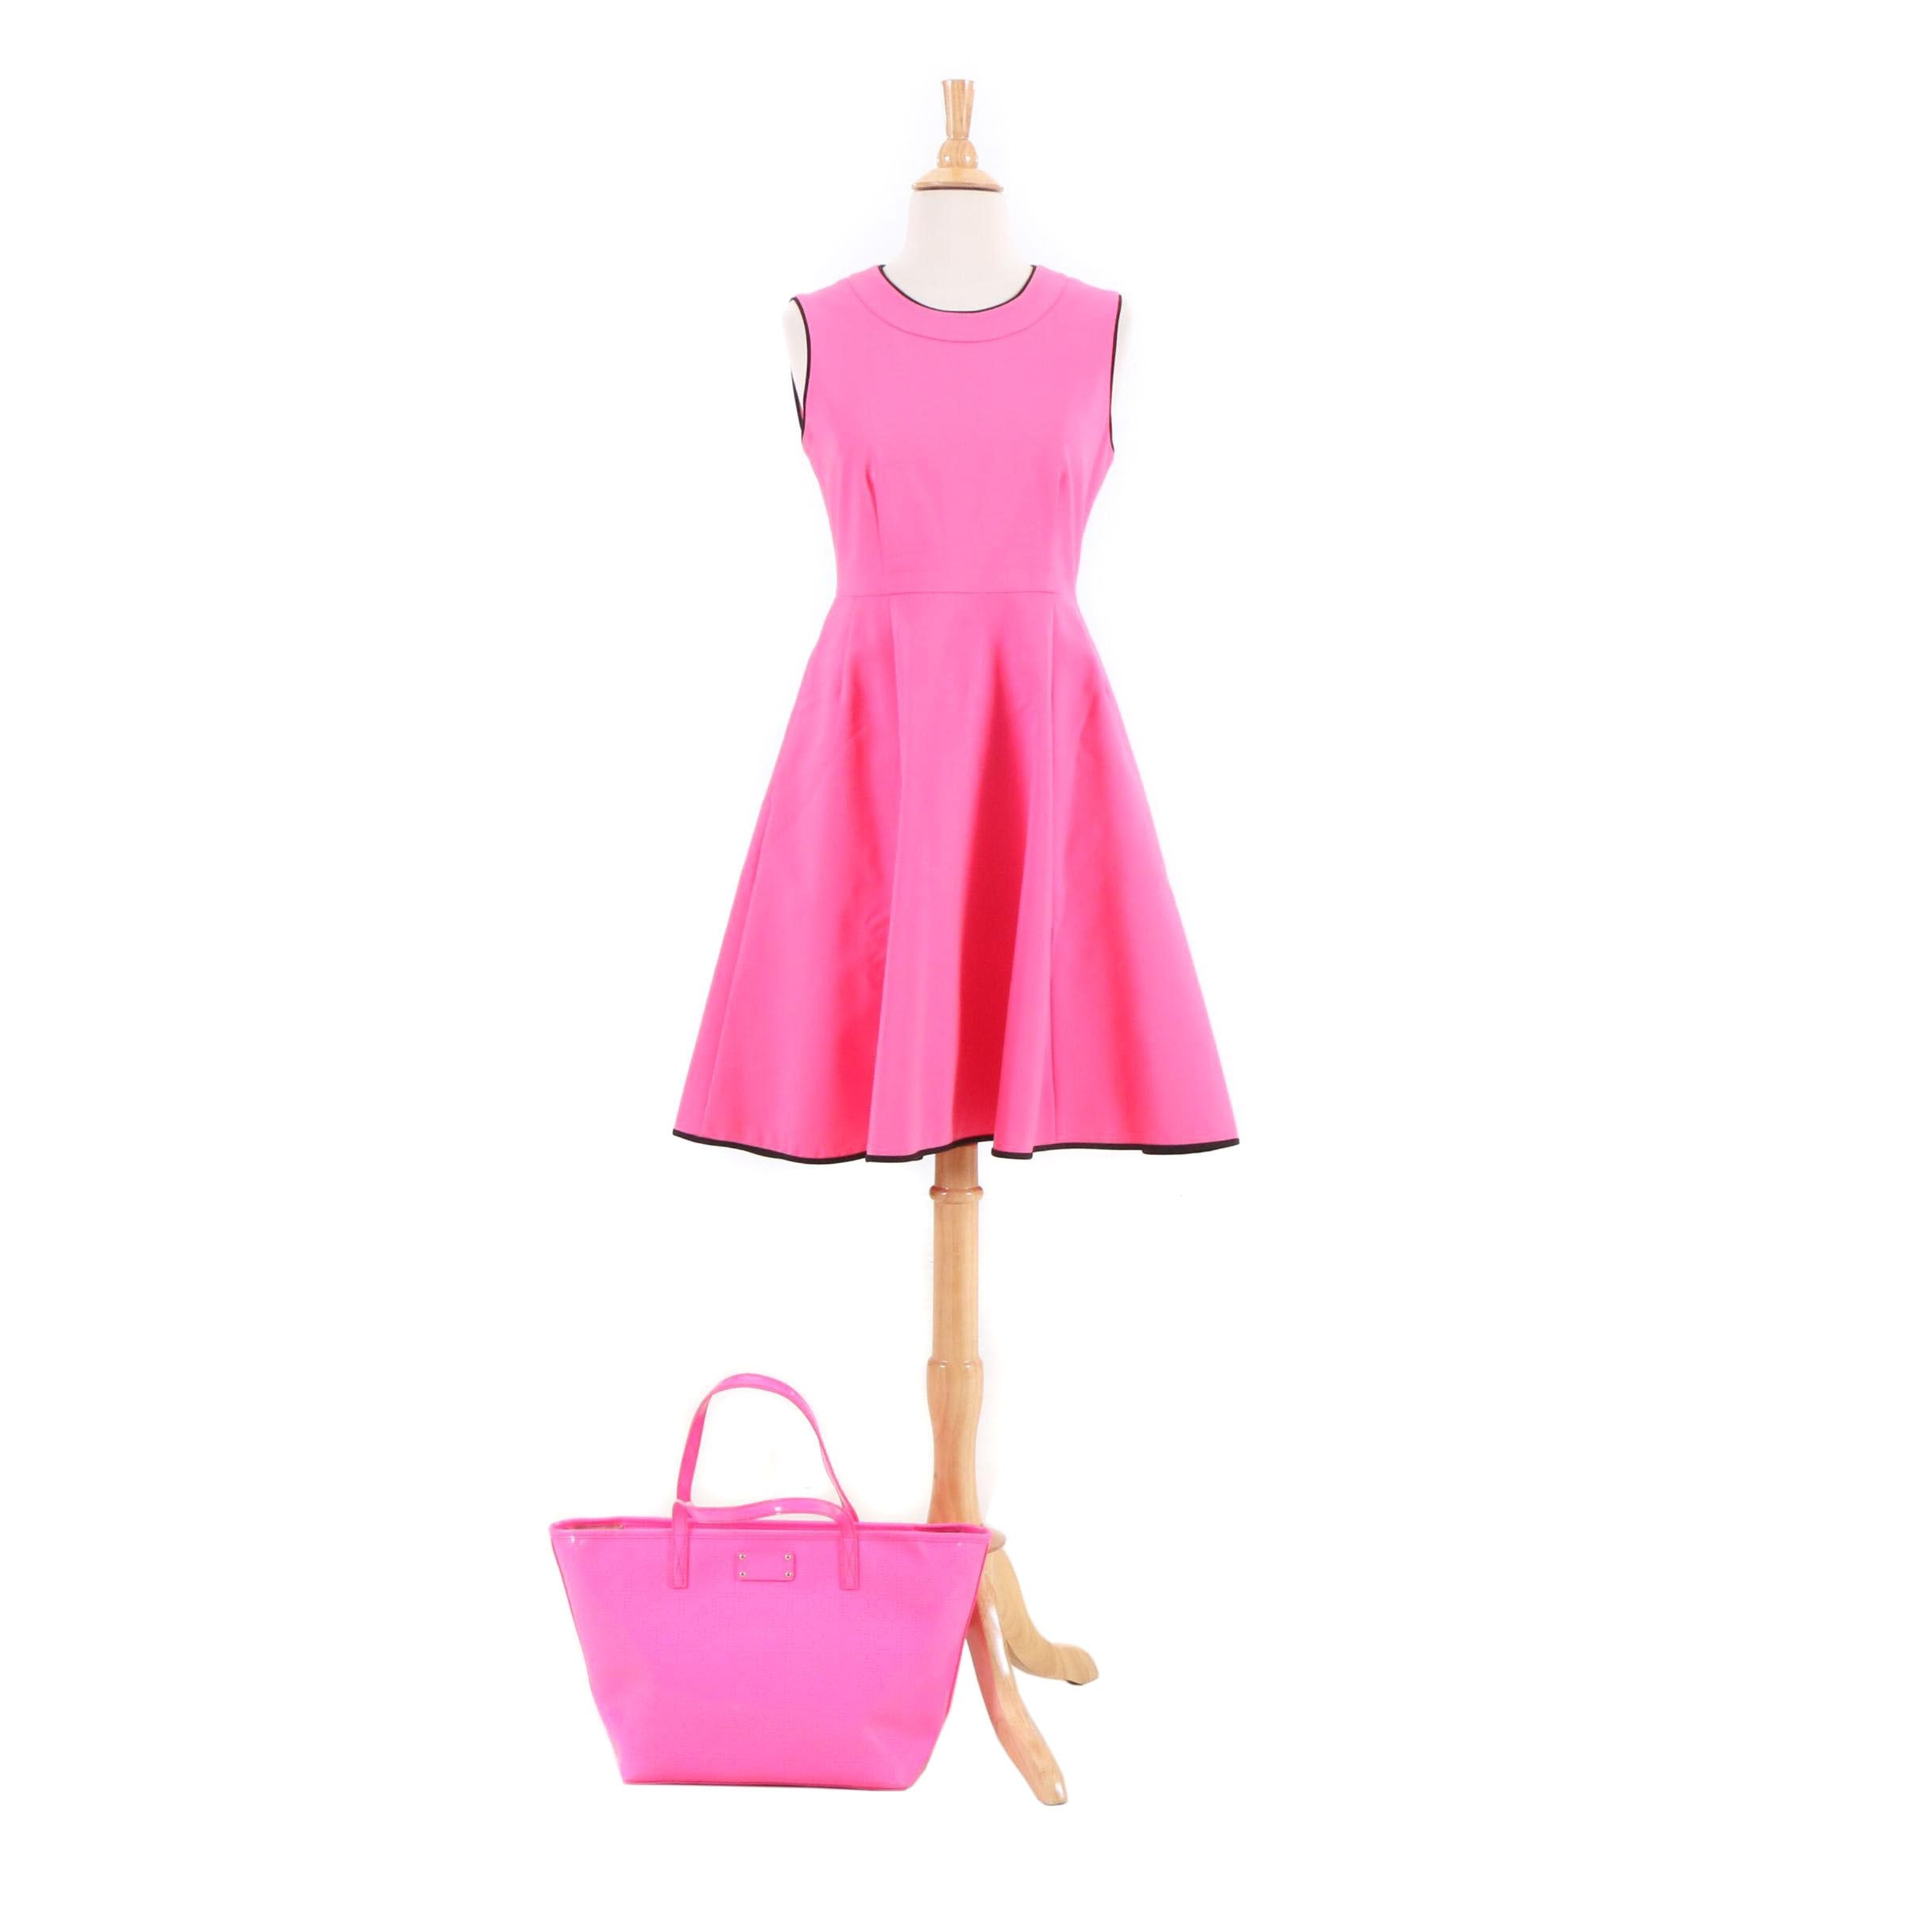 Kate Spade Pink Carol Dress and Hot Pink Harmony Metro Perforated Tote Bag